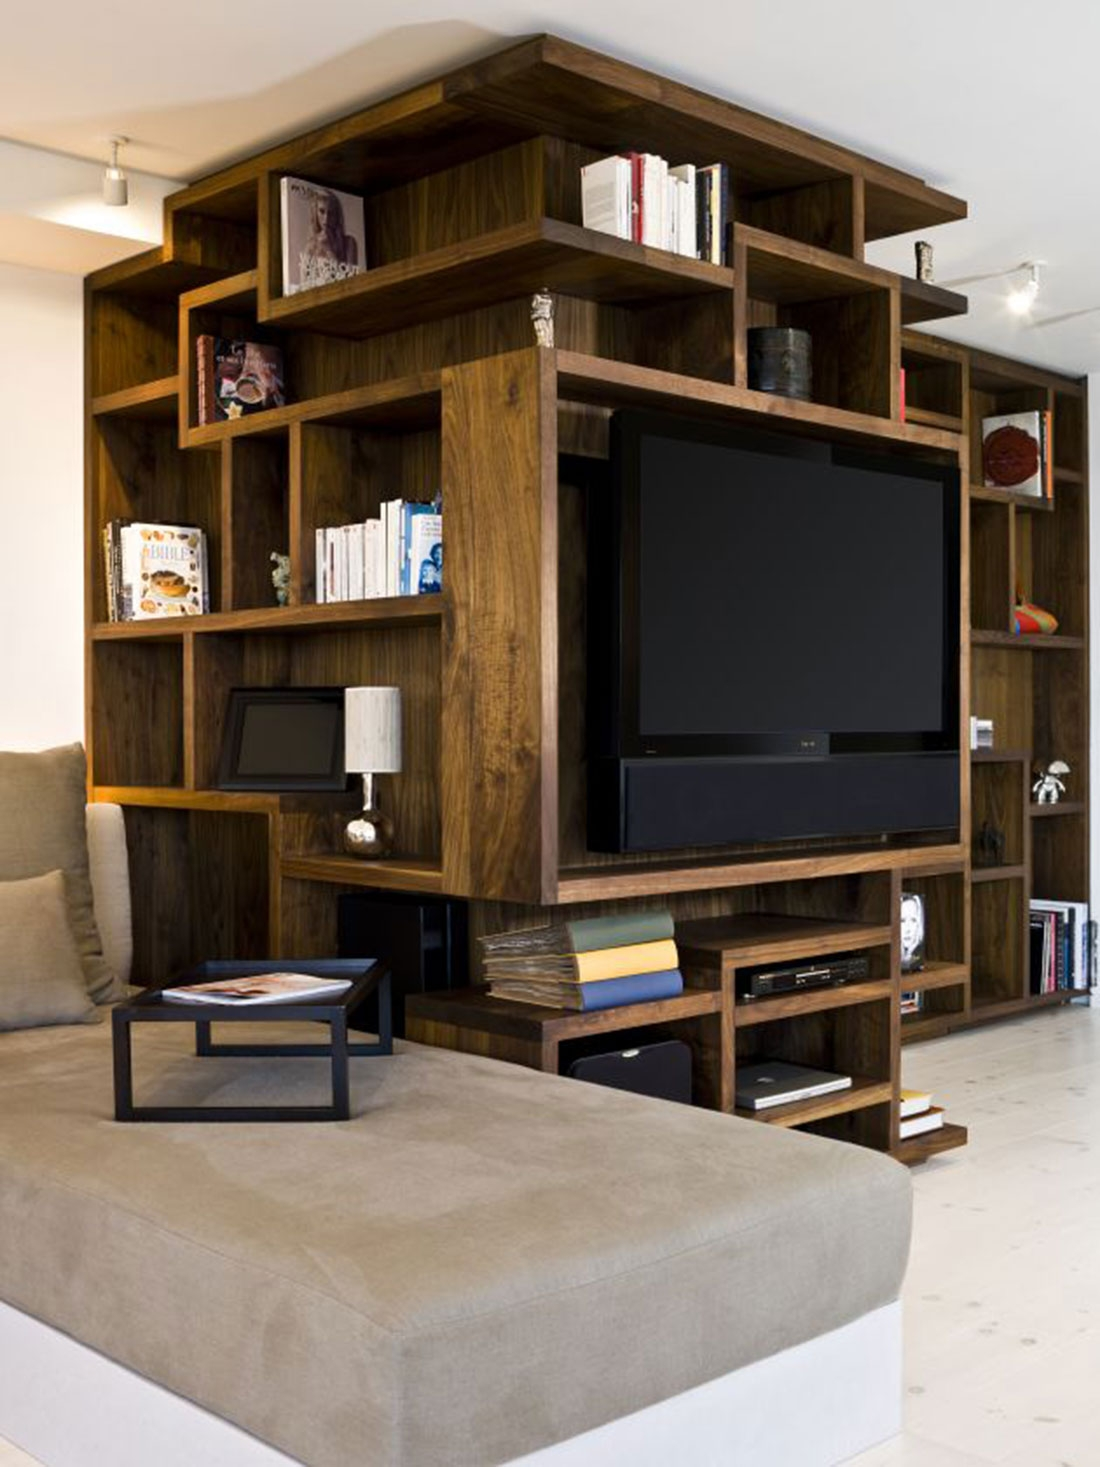 Bookcase Design Ideas Home Design Ideas Pertaining To Unique Bookcase Designs (#5 of 15)